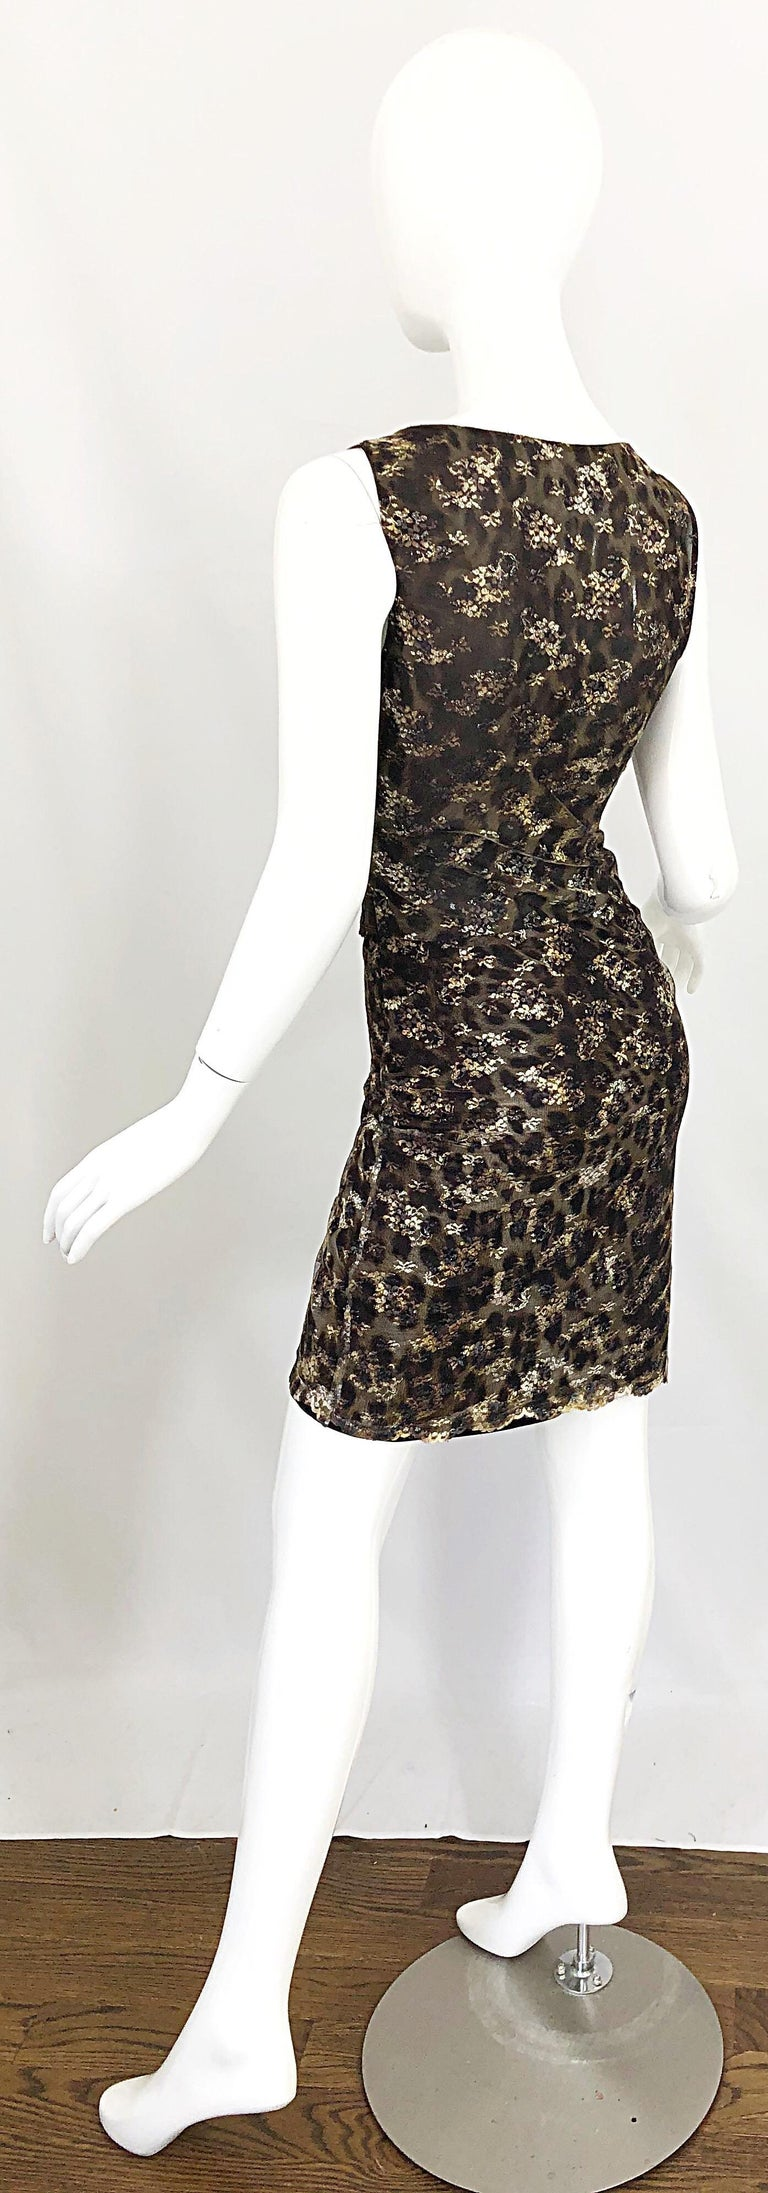 Gai Mattiolo 1990s Sexy Semi Sheer Leopard Brown Metallic Vintage 90s Dress For Sale 9